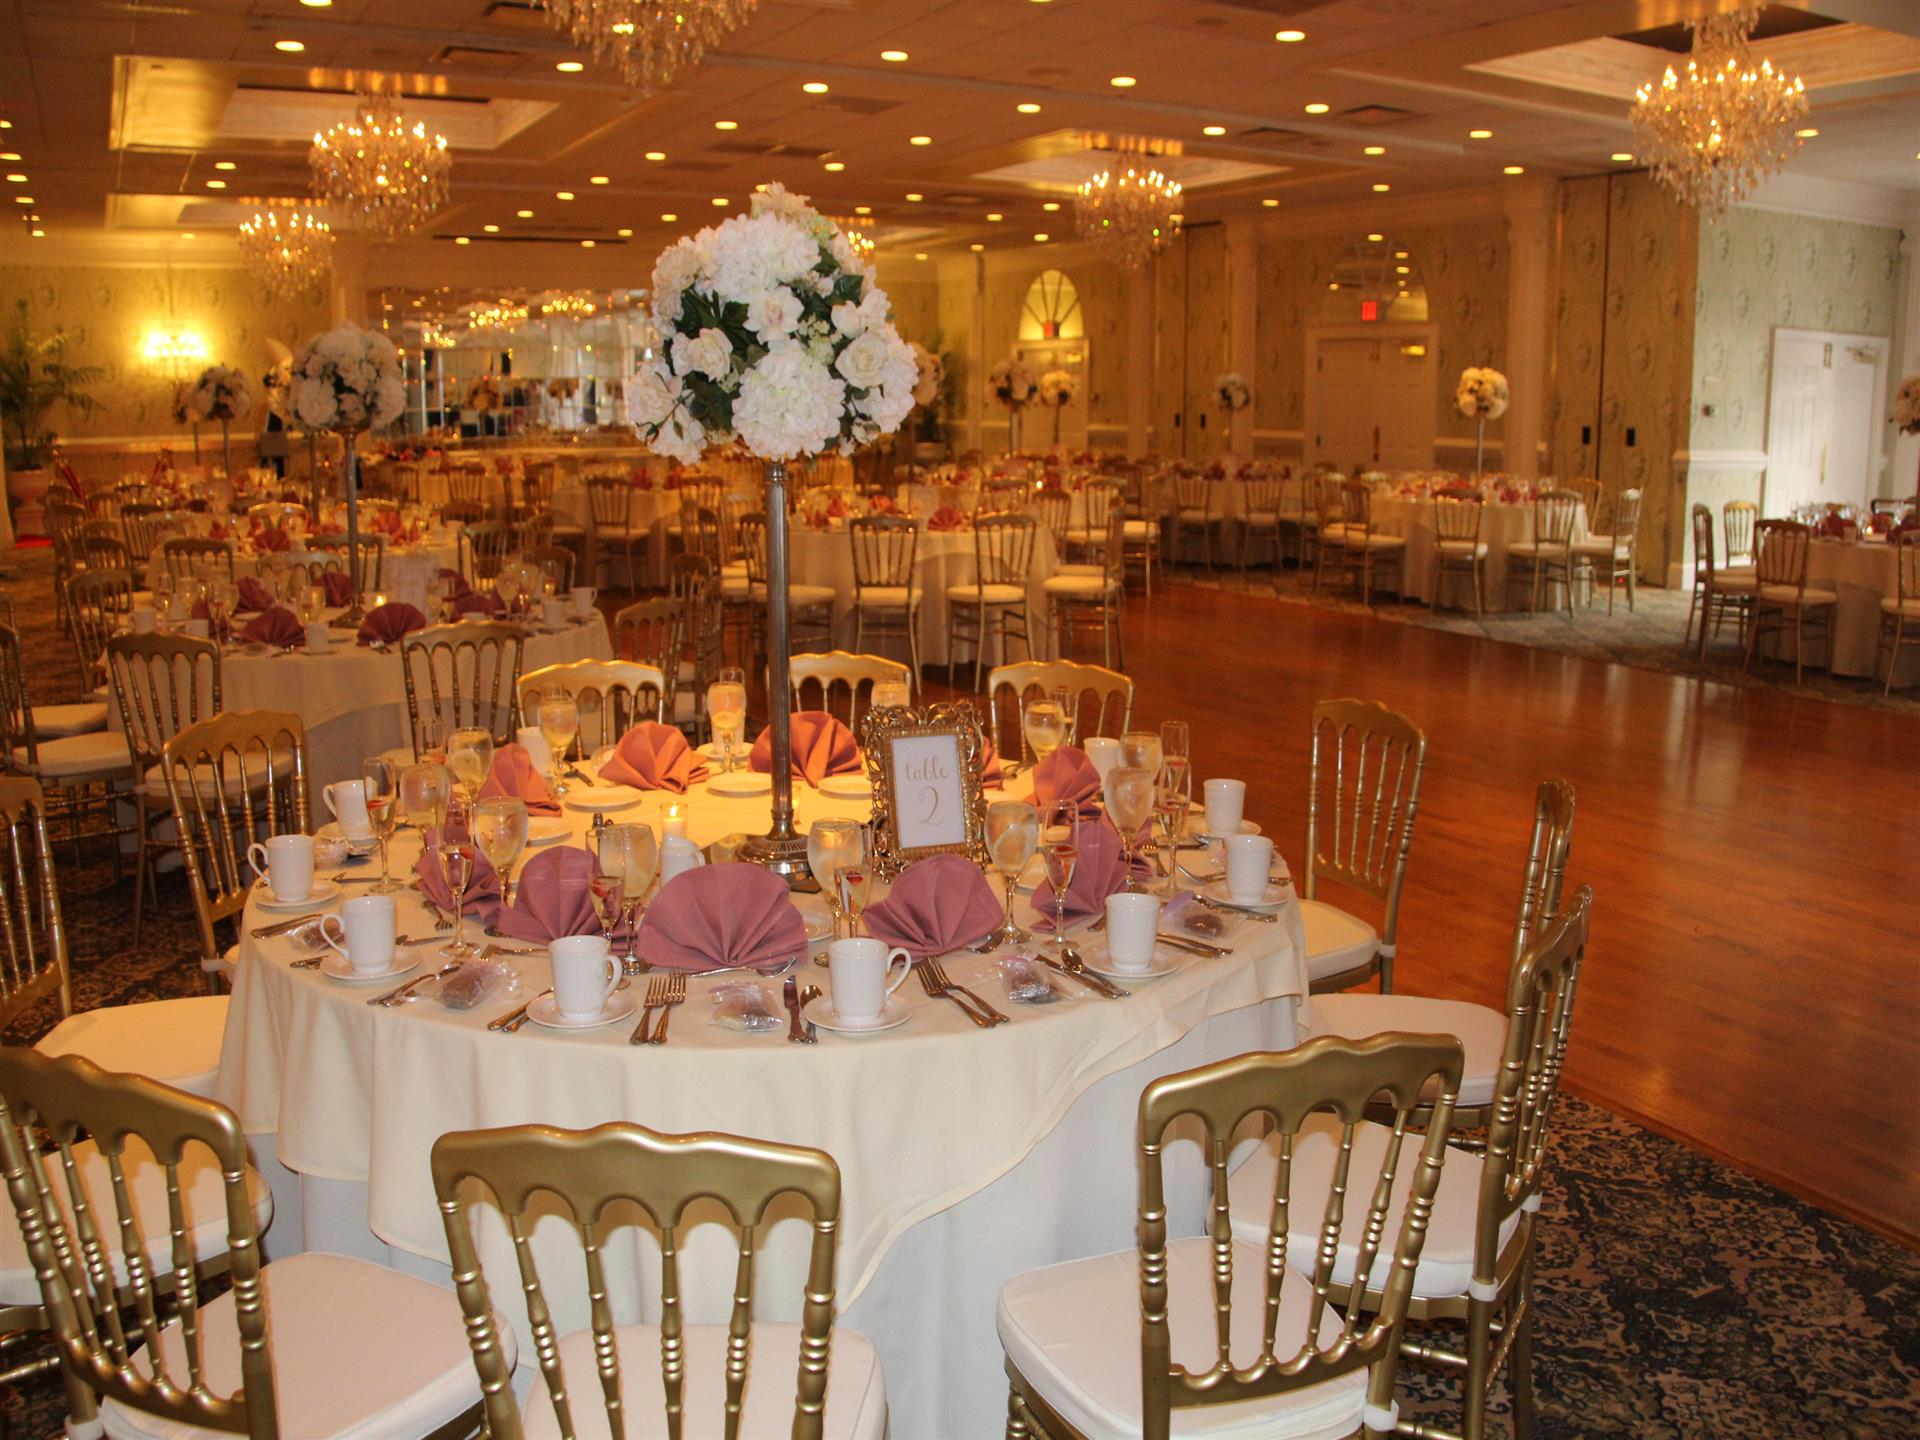 multiple decorated tables and chairs in the banquet room